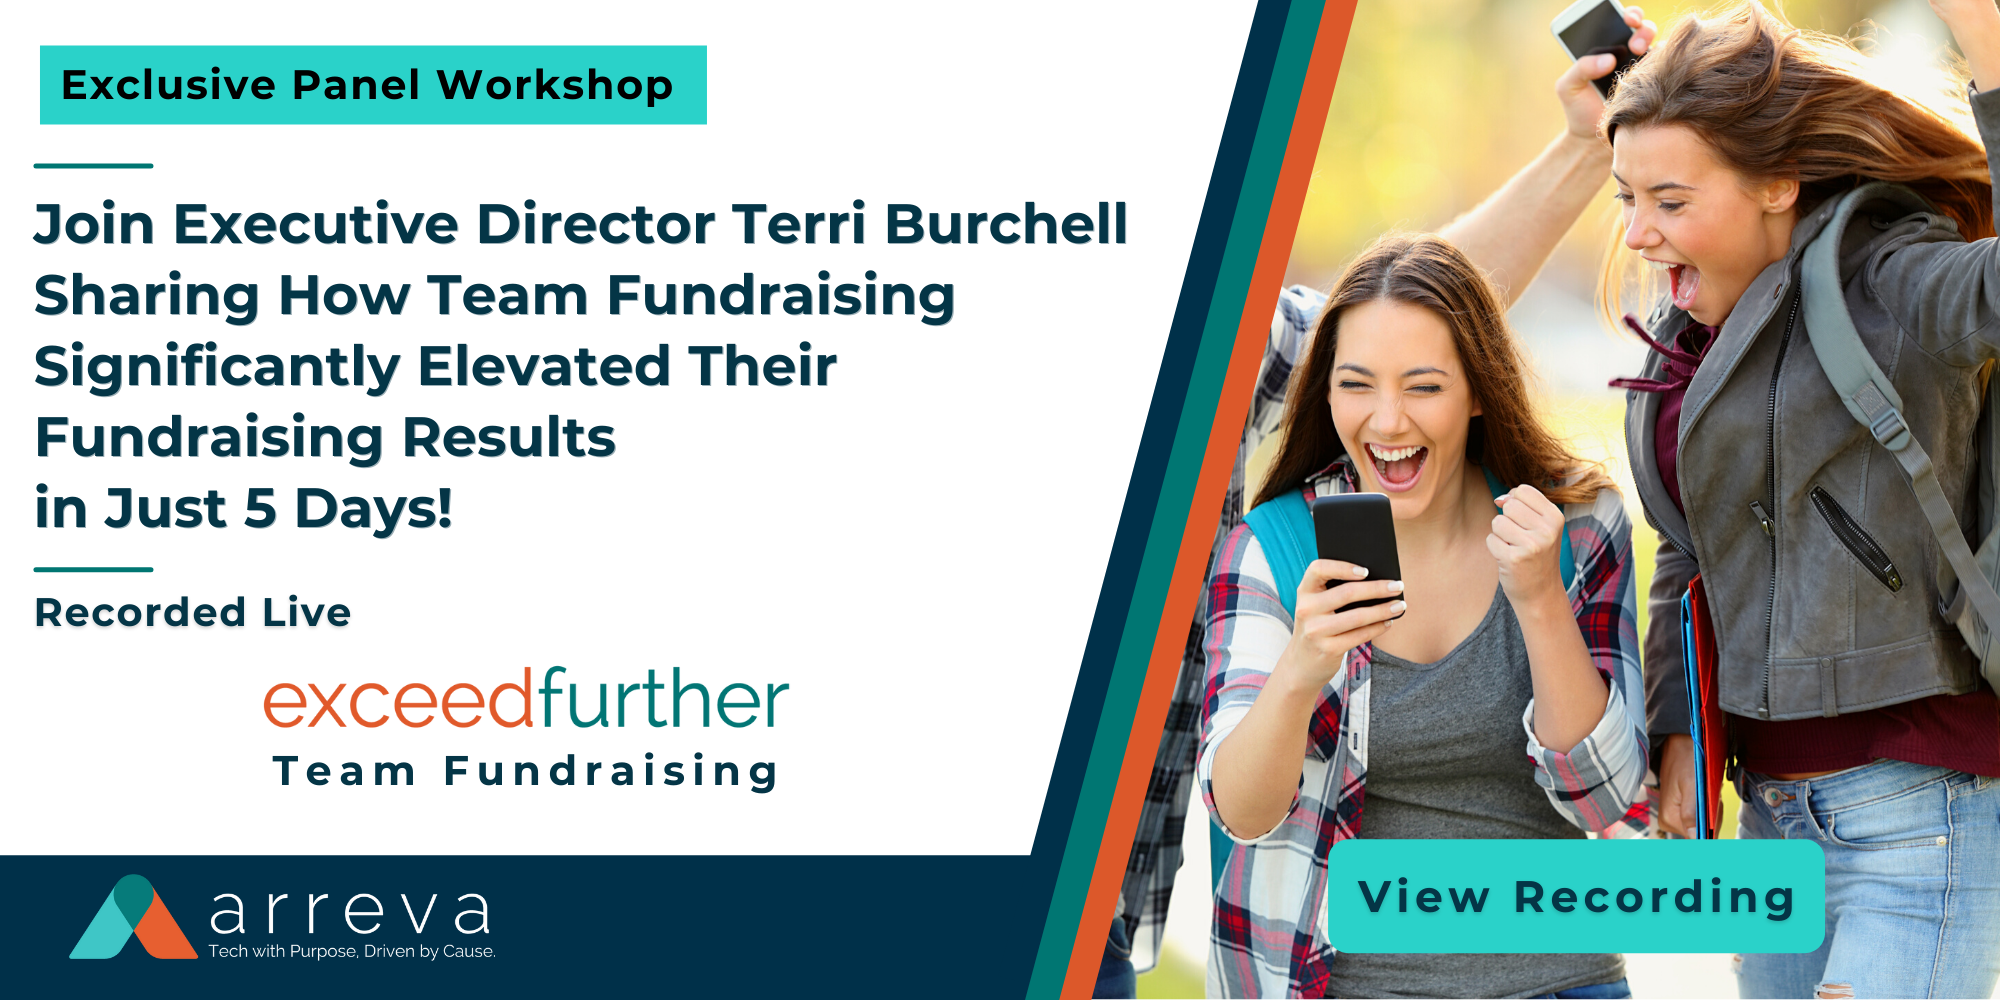 Recording - Email and LP  Exclusive Panel Workshop - Team Fundraising - 9-23-2021 (1)